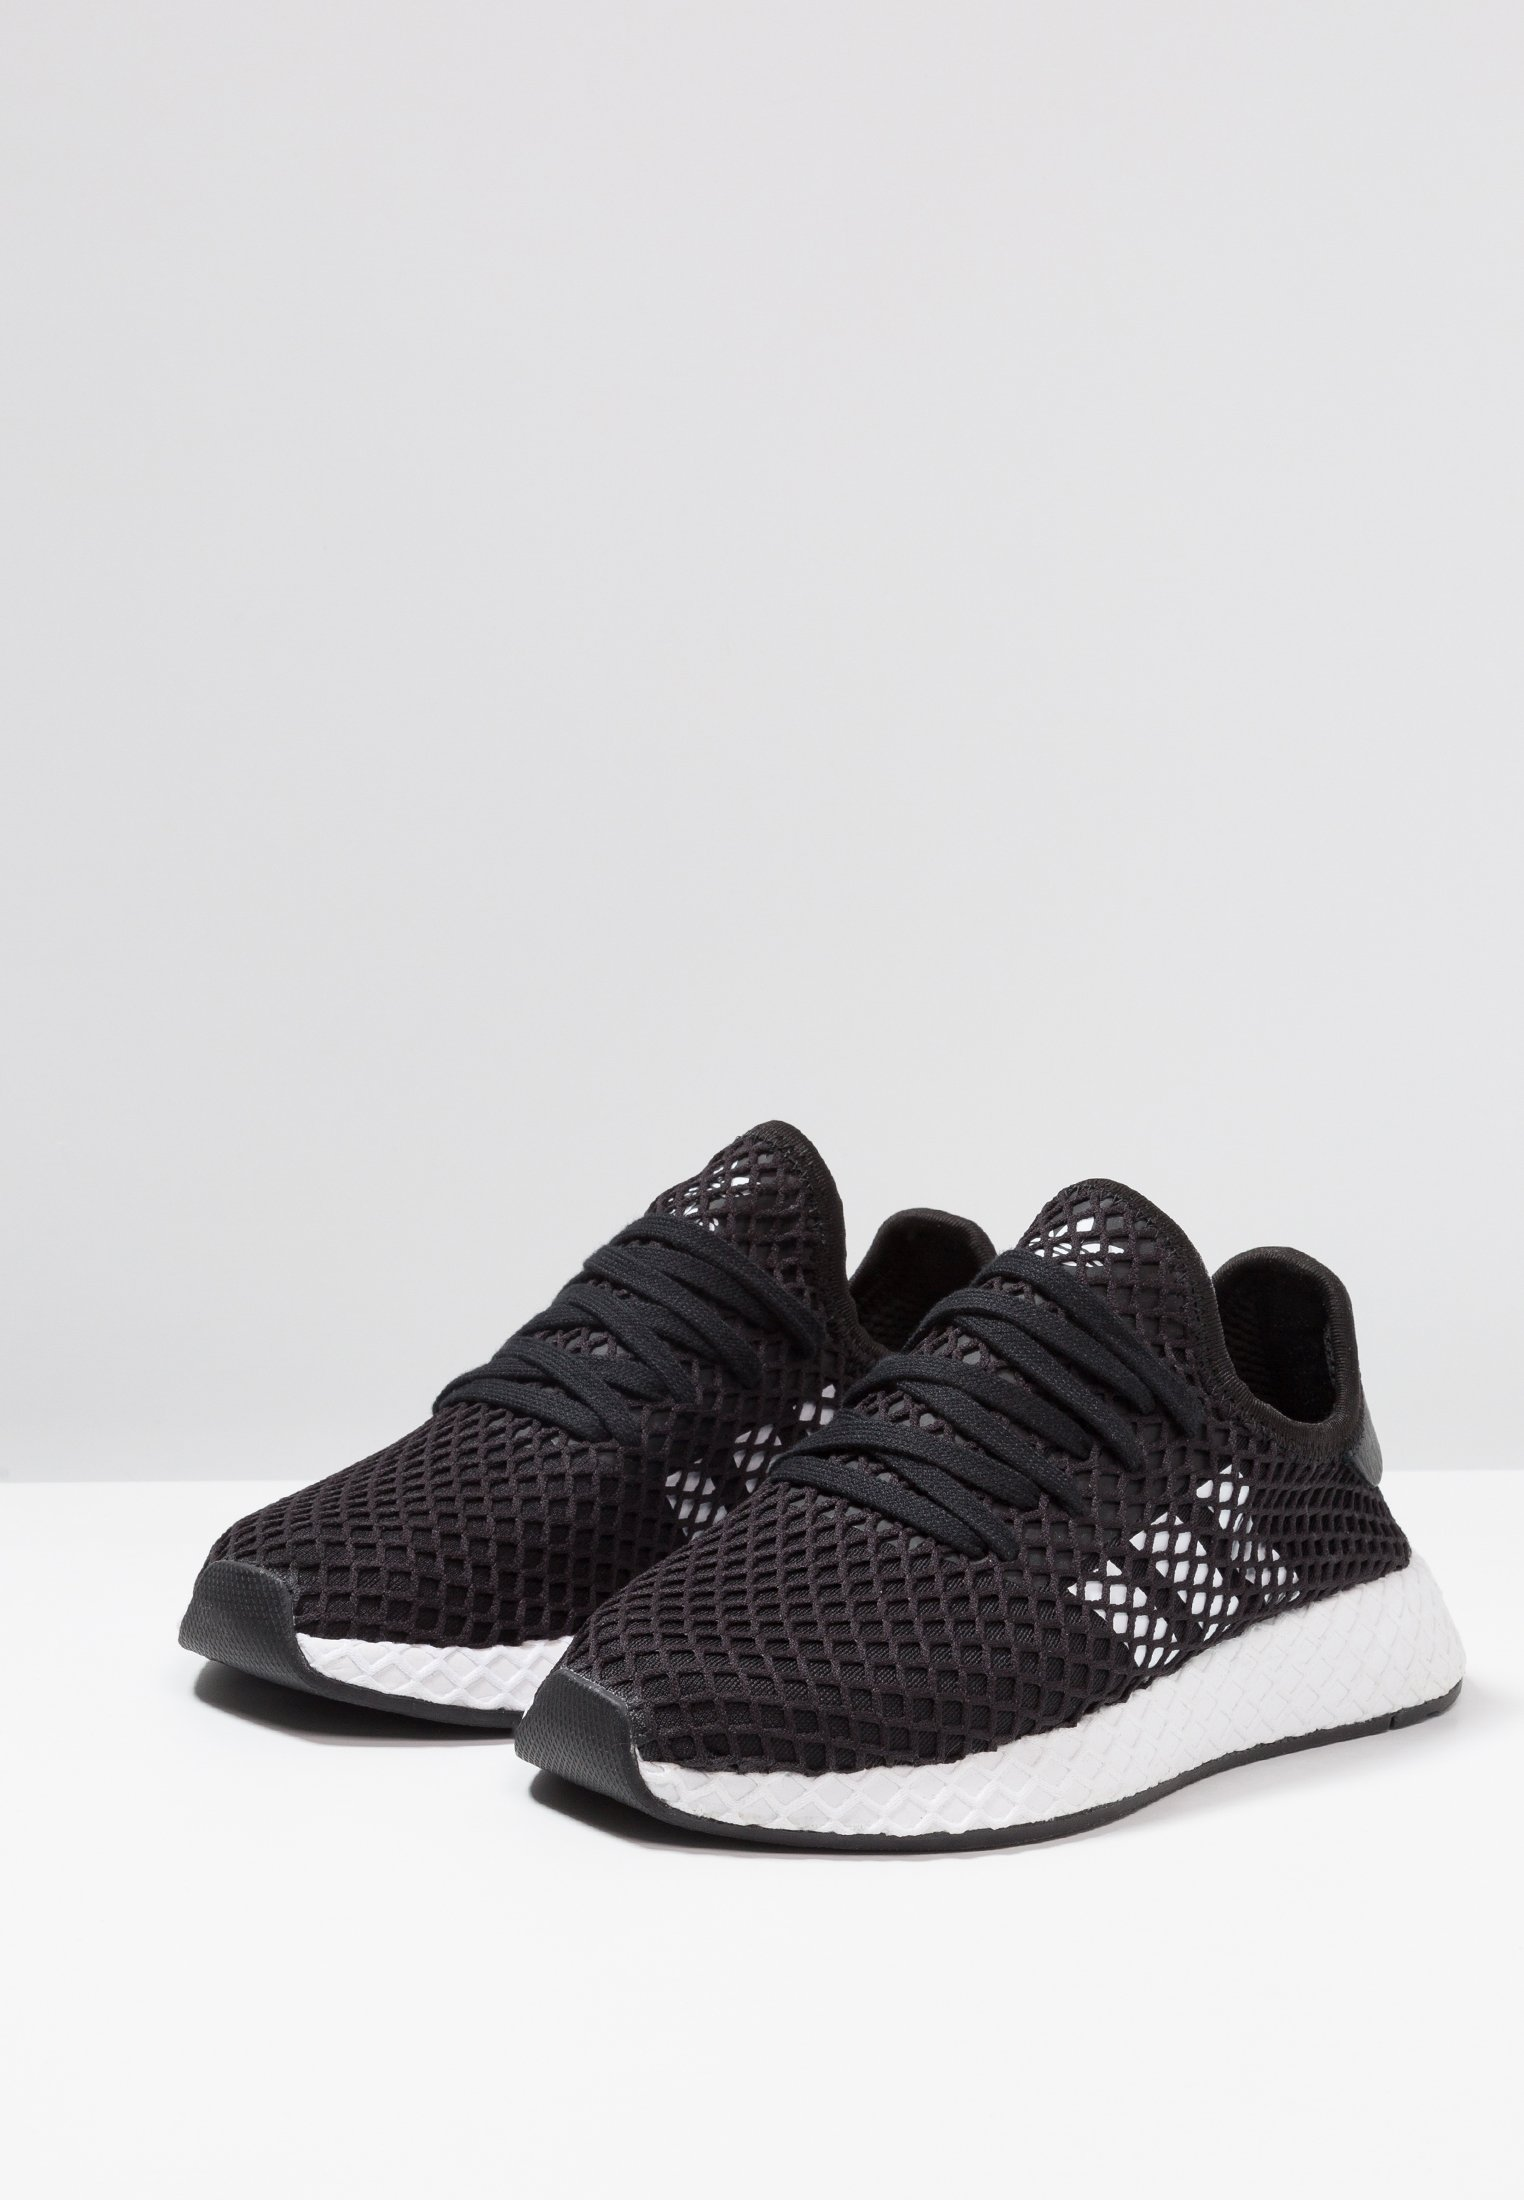 Deerupt Basses Originals Core RunnerBaskets footwear Adidas Balck White wPOk8Xn0